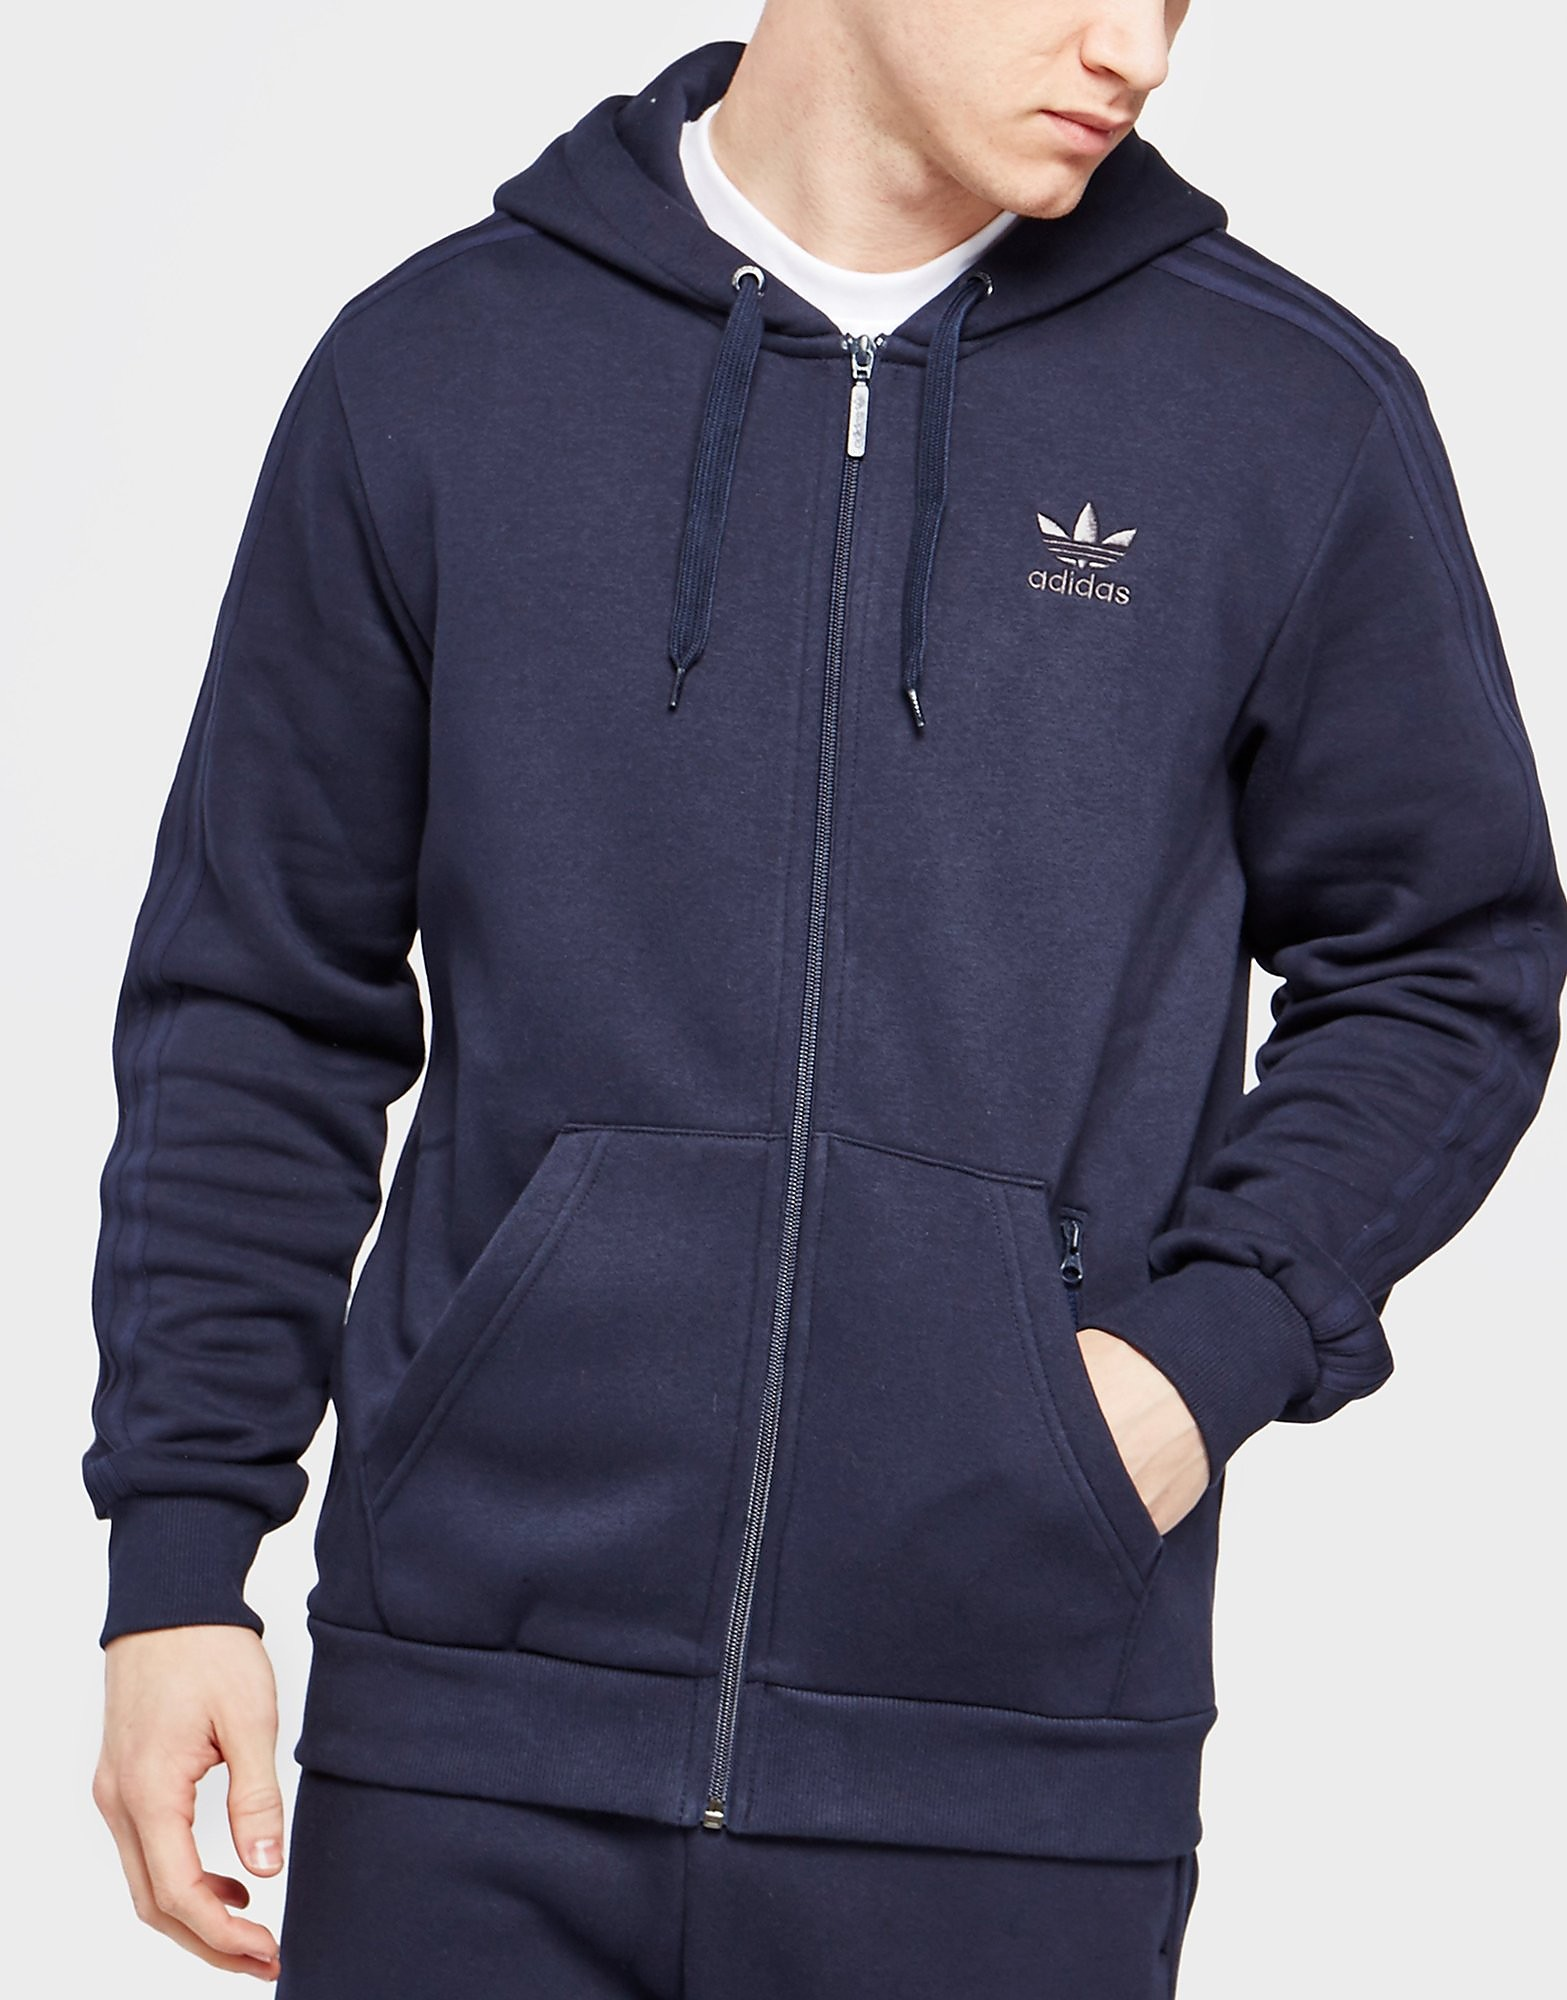 adidas Originals Superstar Full Zip Hoody